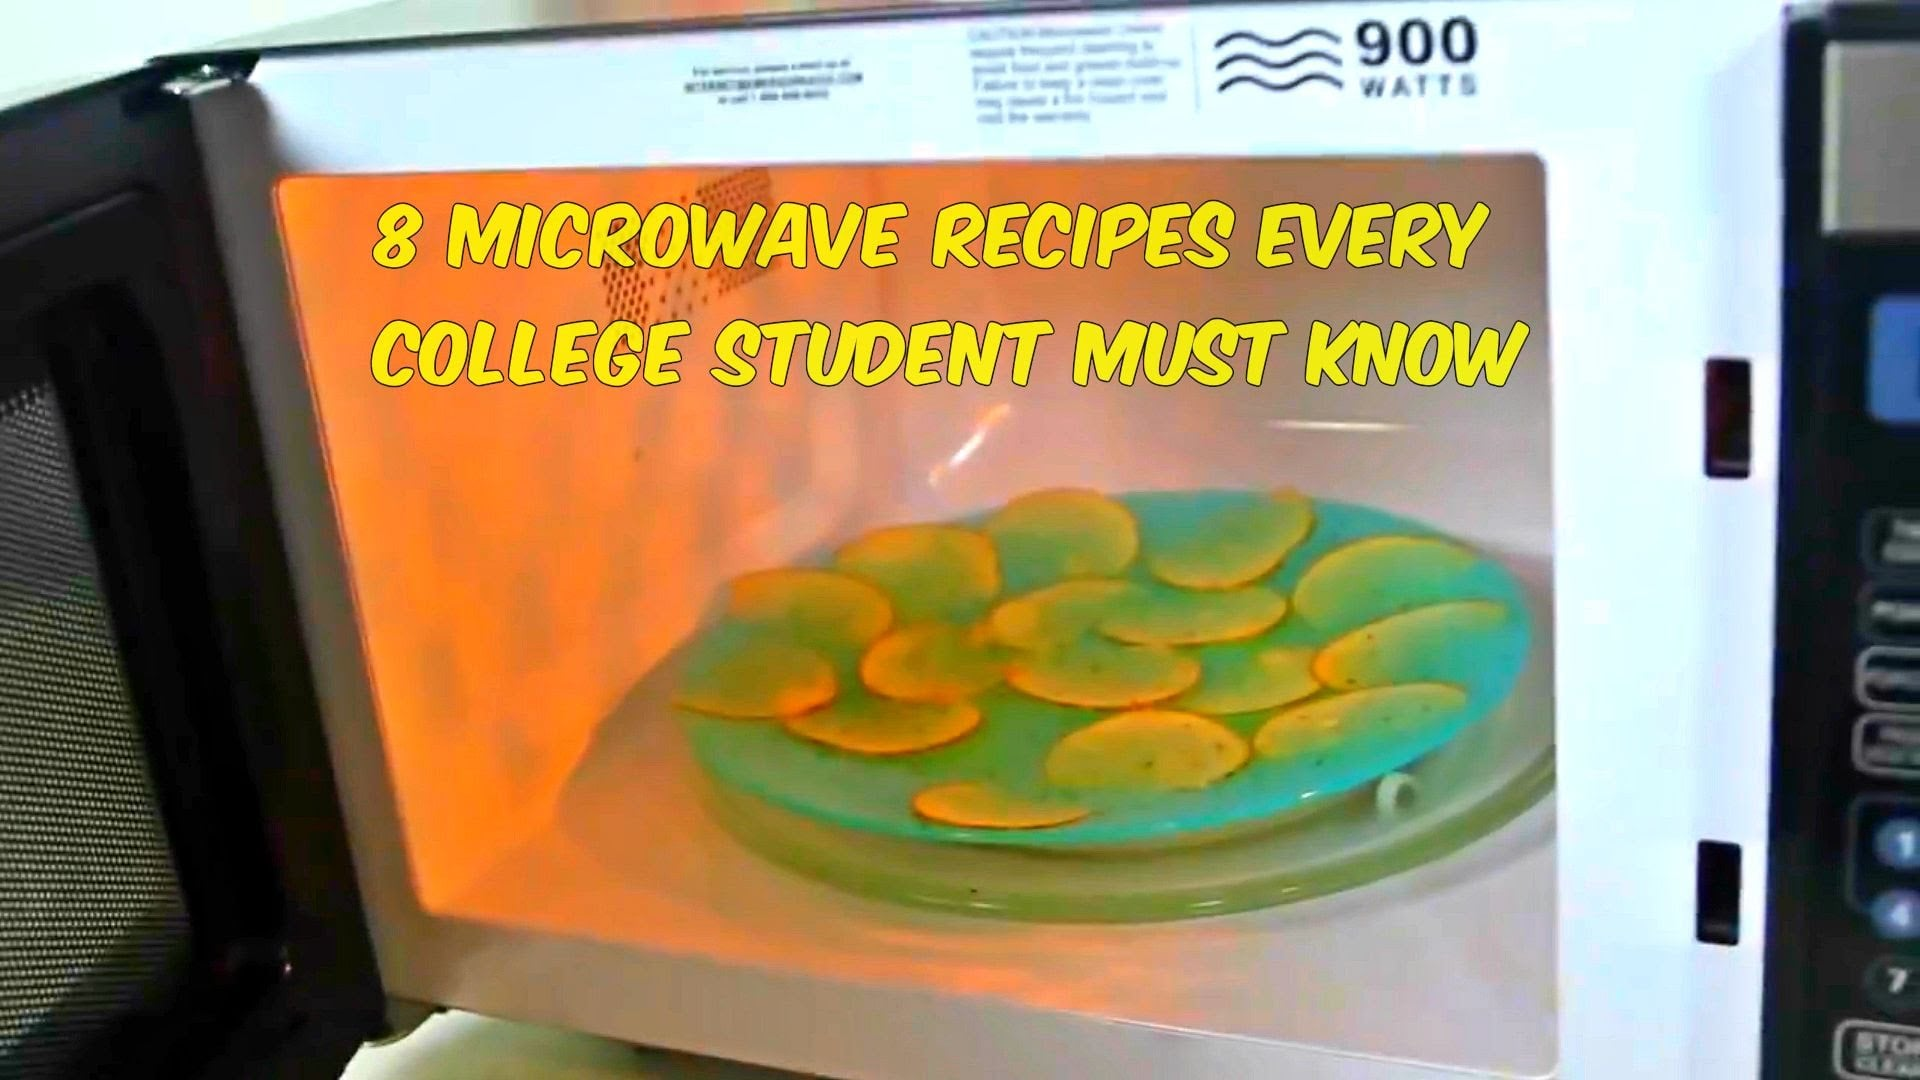 8 Microwave Recipes Every College Student Must Know